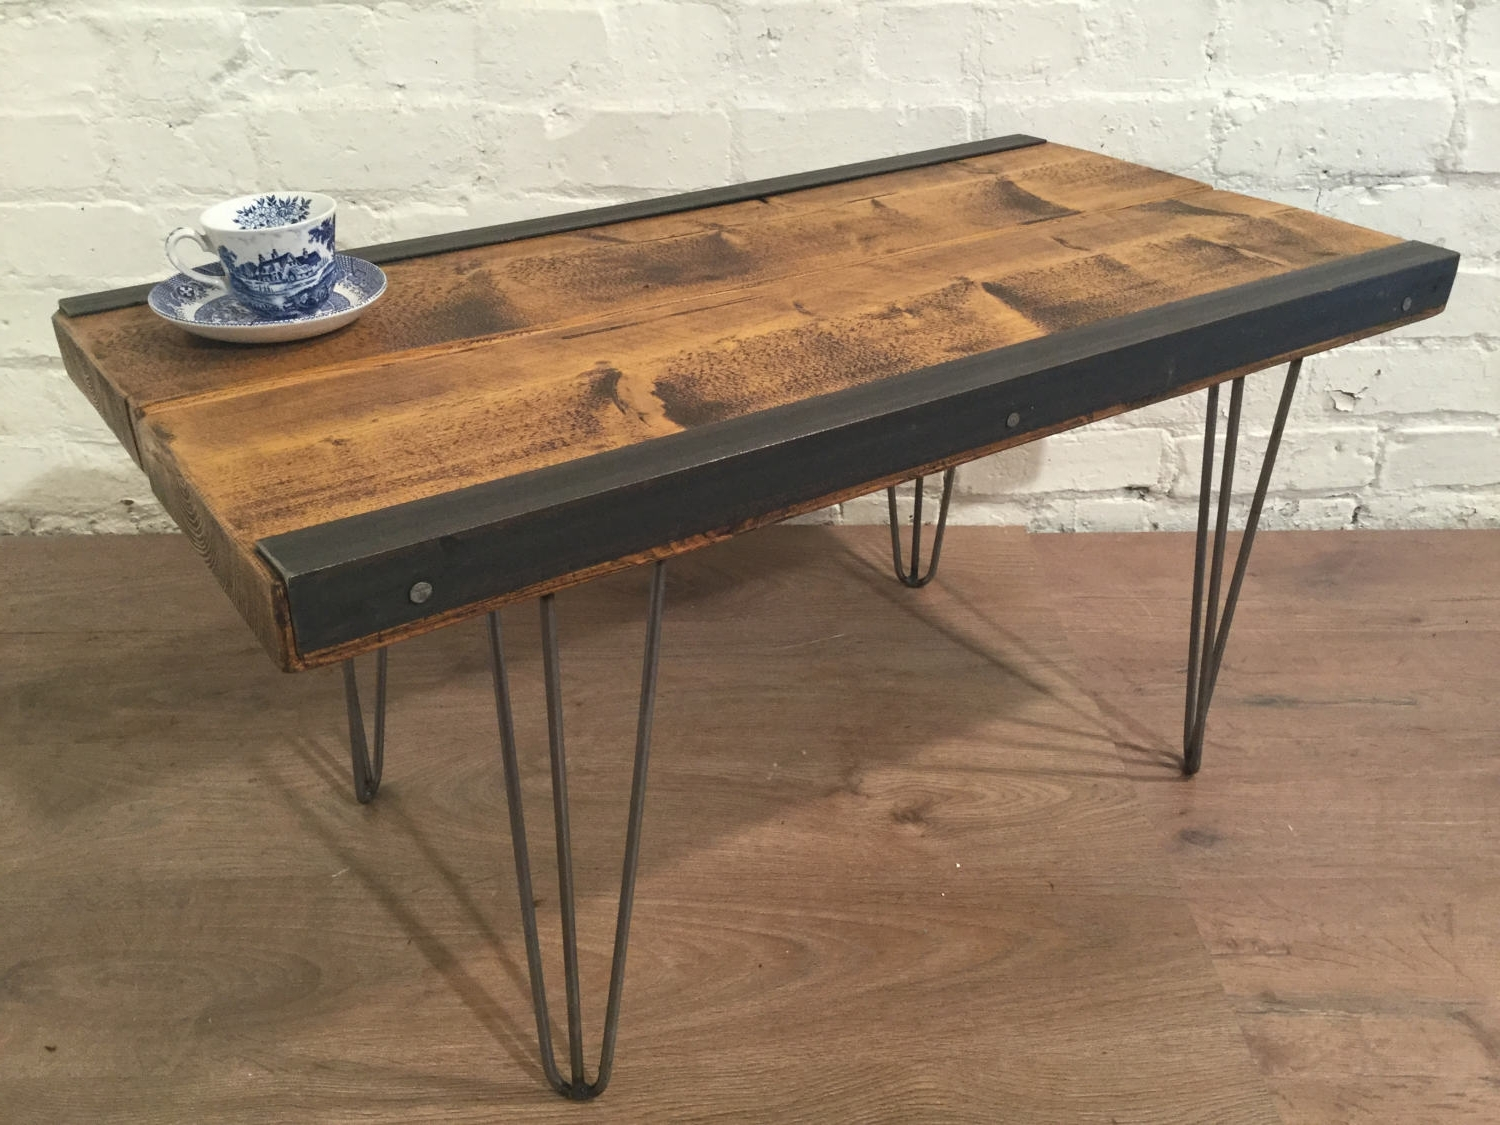 Widely Used Reclaimed Pine & Iron Coffee Tables Intended For English Built Hand Made Solid Reclaimed Pine Plank Industrial Coffee (View 14 of 20)